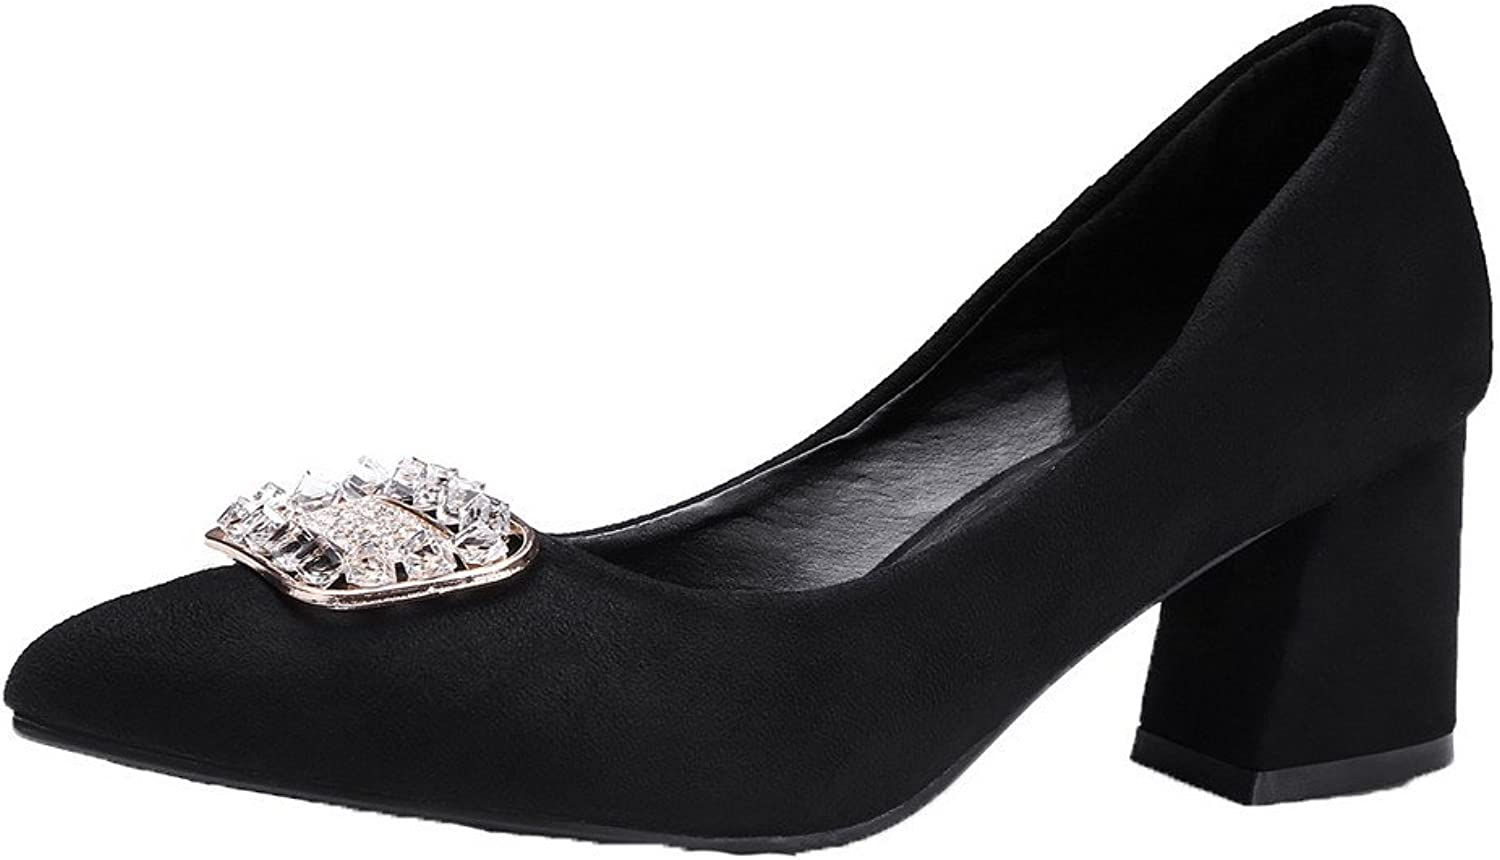 WeenFashion Women's Pointed-Toe Pull-On Kitten-Heels Frosted Solid Pumps-shoes